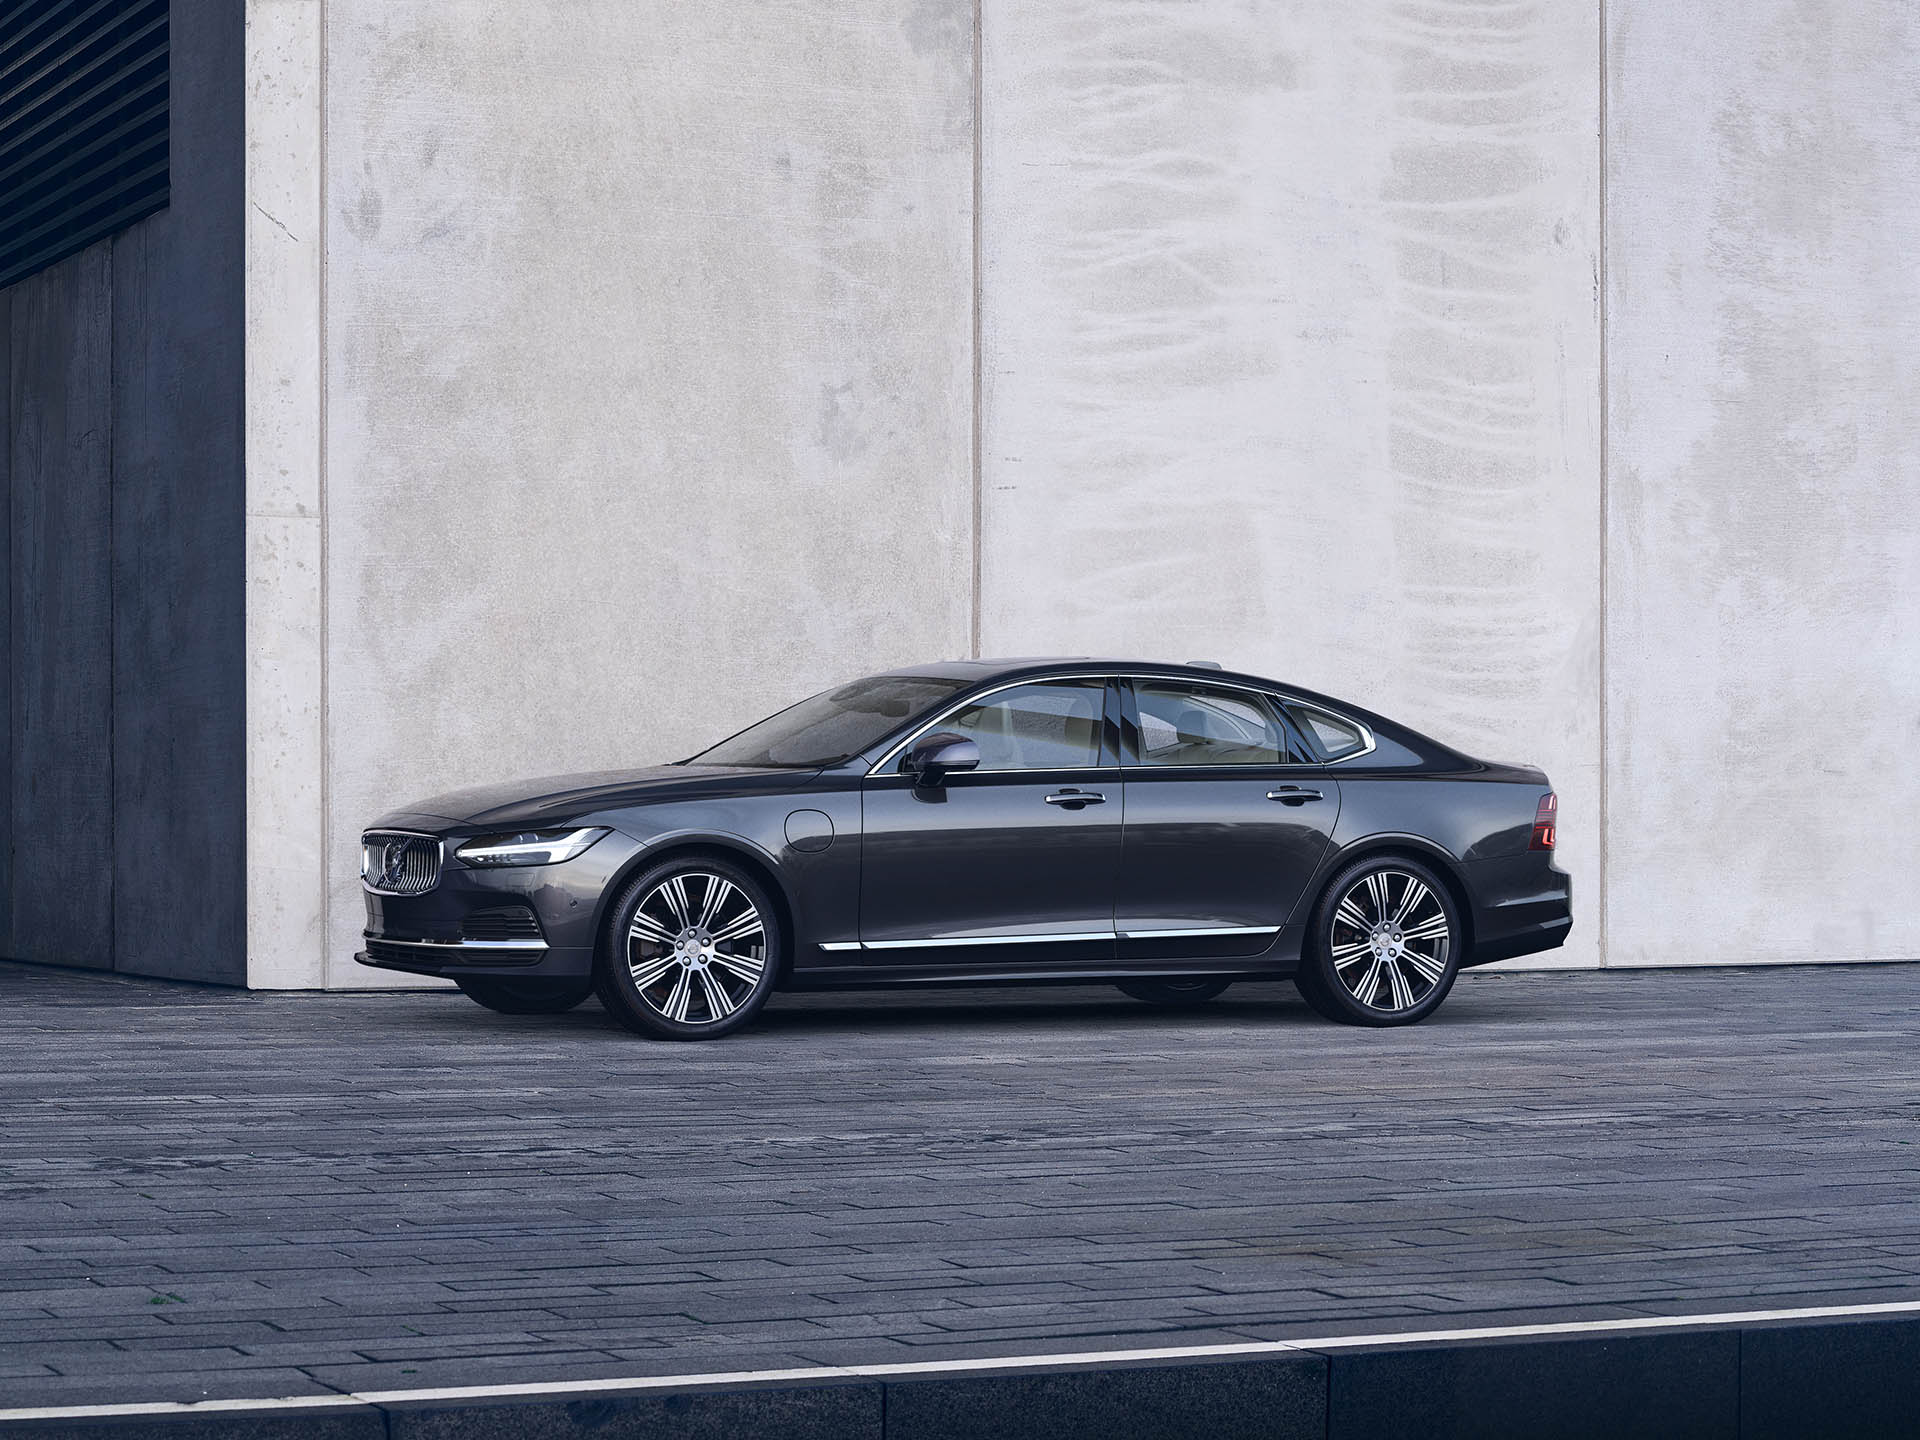 A Volvo S90 Sedan parked outside in front of a big wall